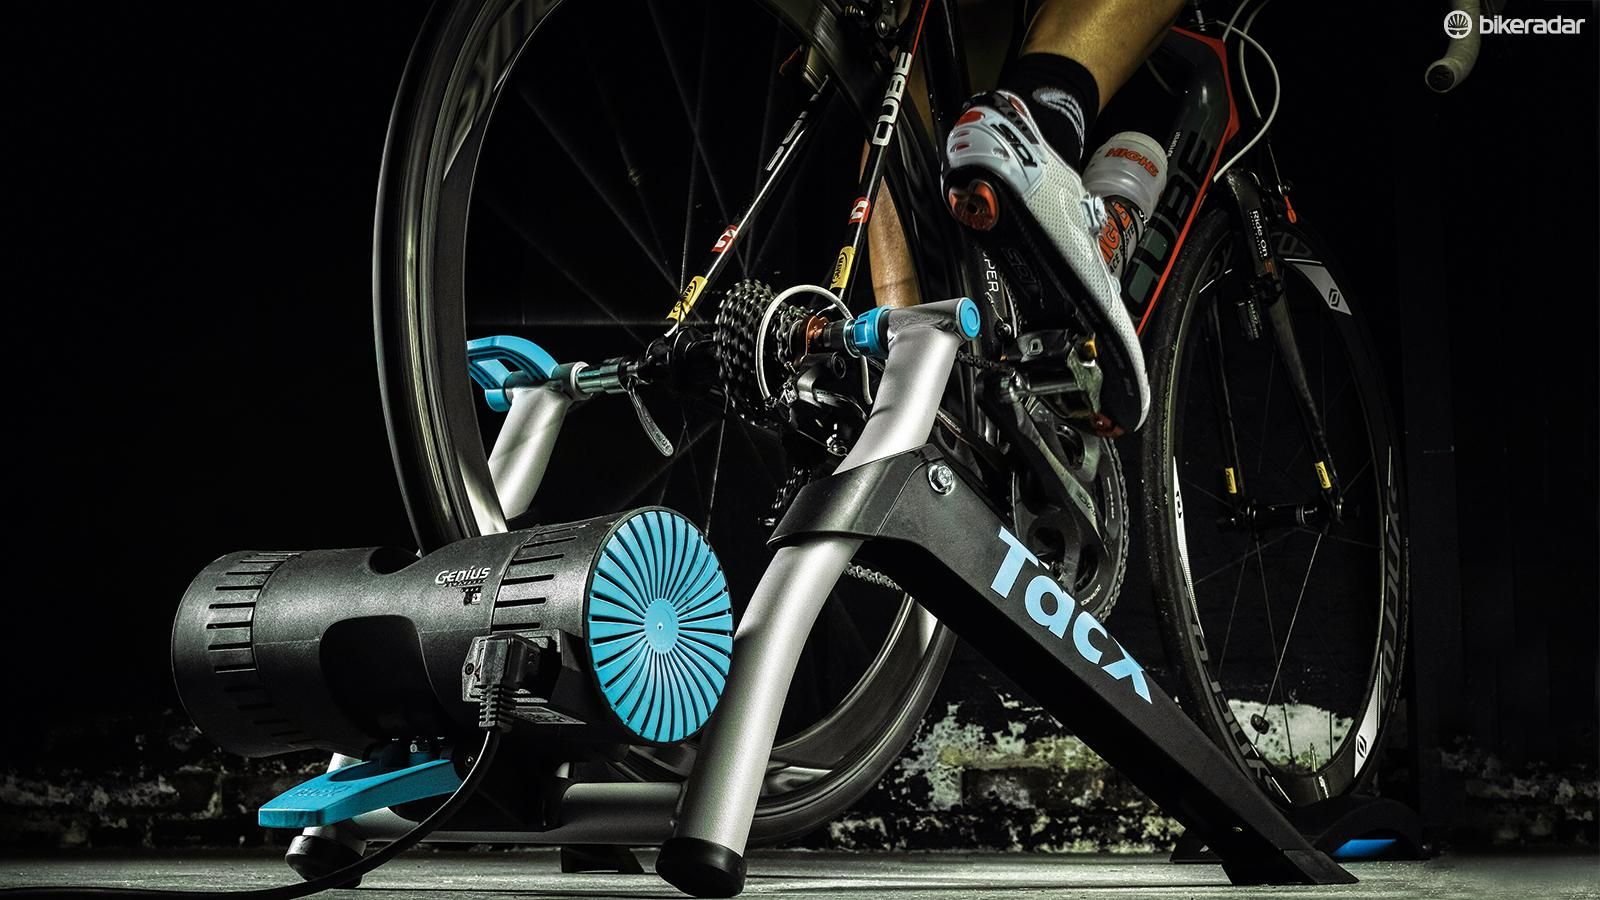 Best Turbo Trainer 2020 Top Rated Smart Trainers Best Turbo